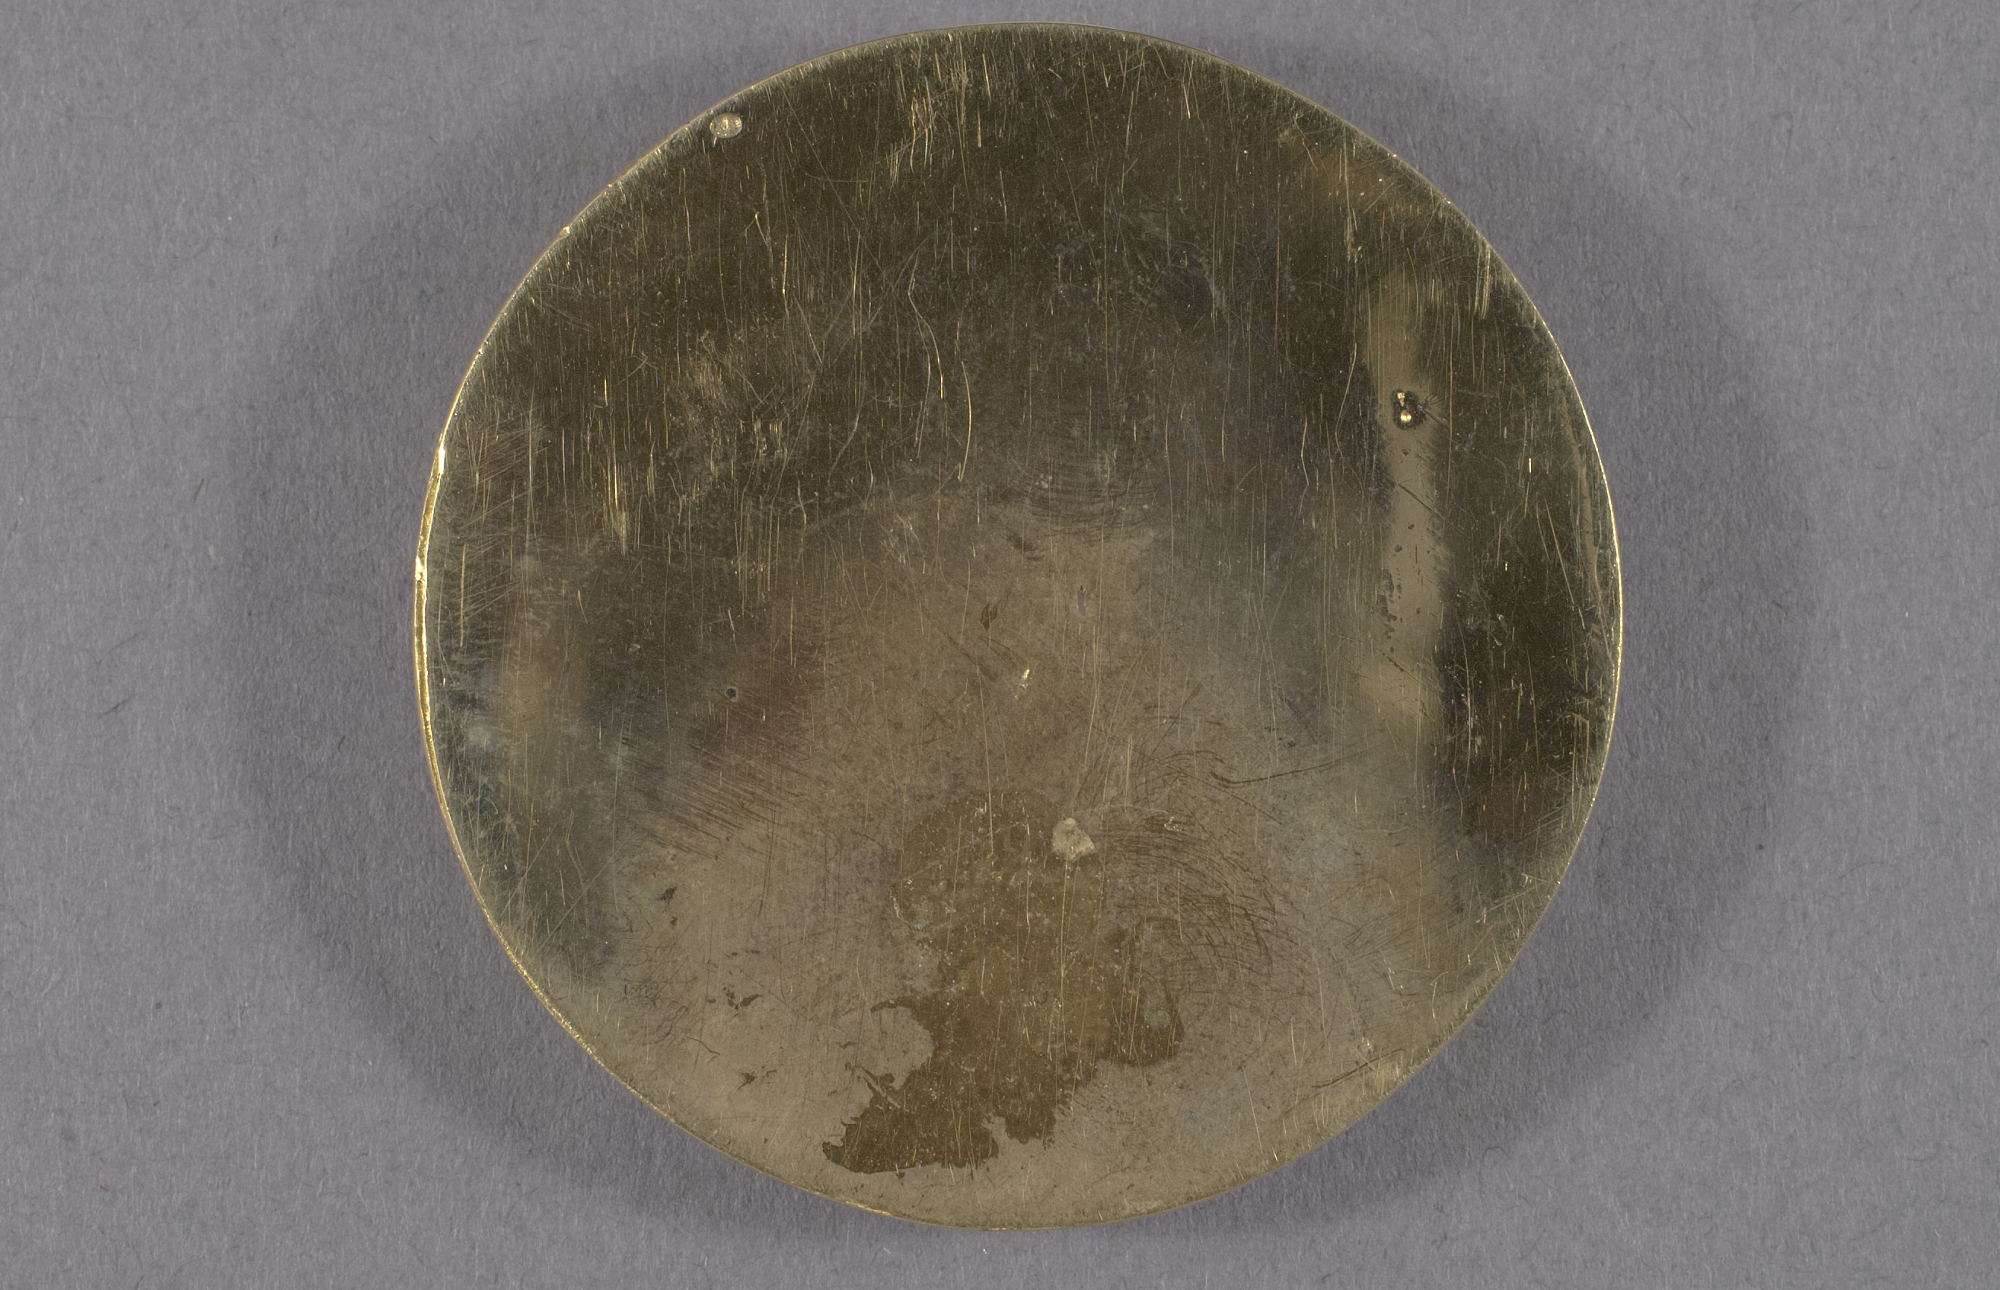 Image of : Medal, Apollo 11, Neil Armstrong